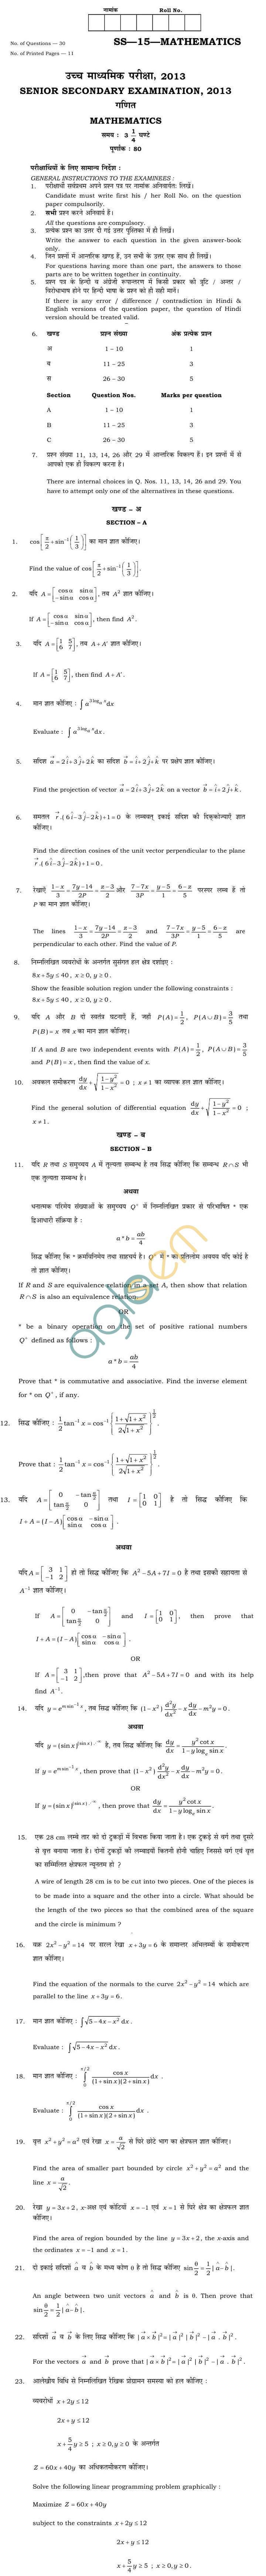 Rajasthan Board Sr. Secondary Maths Question Paper 2013